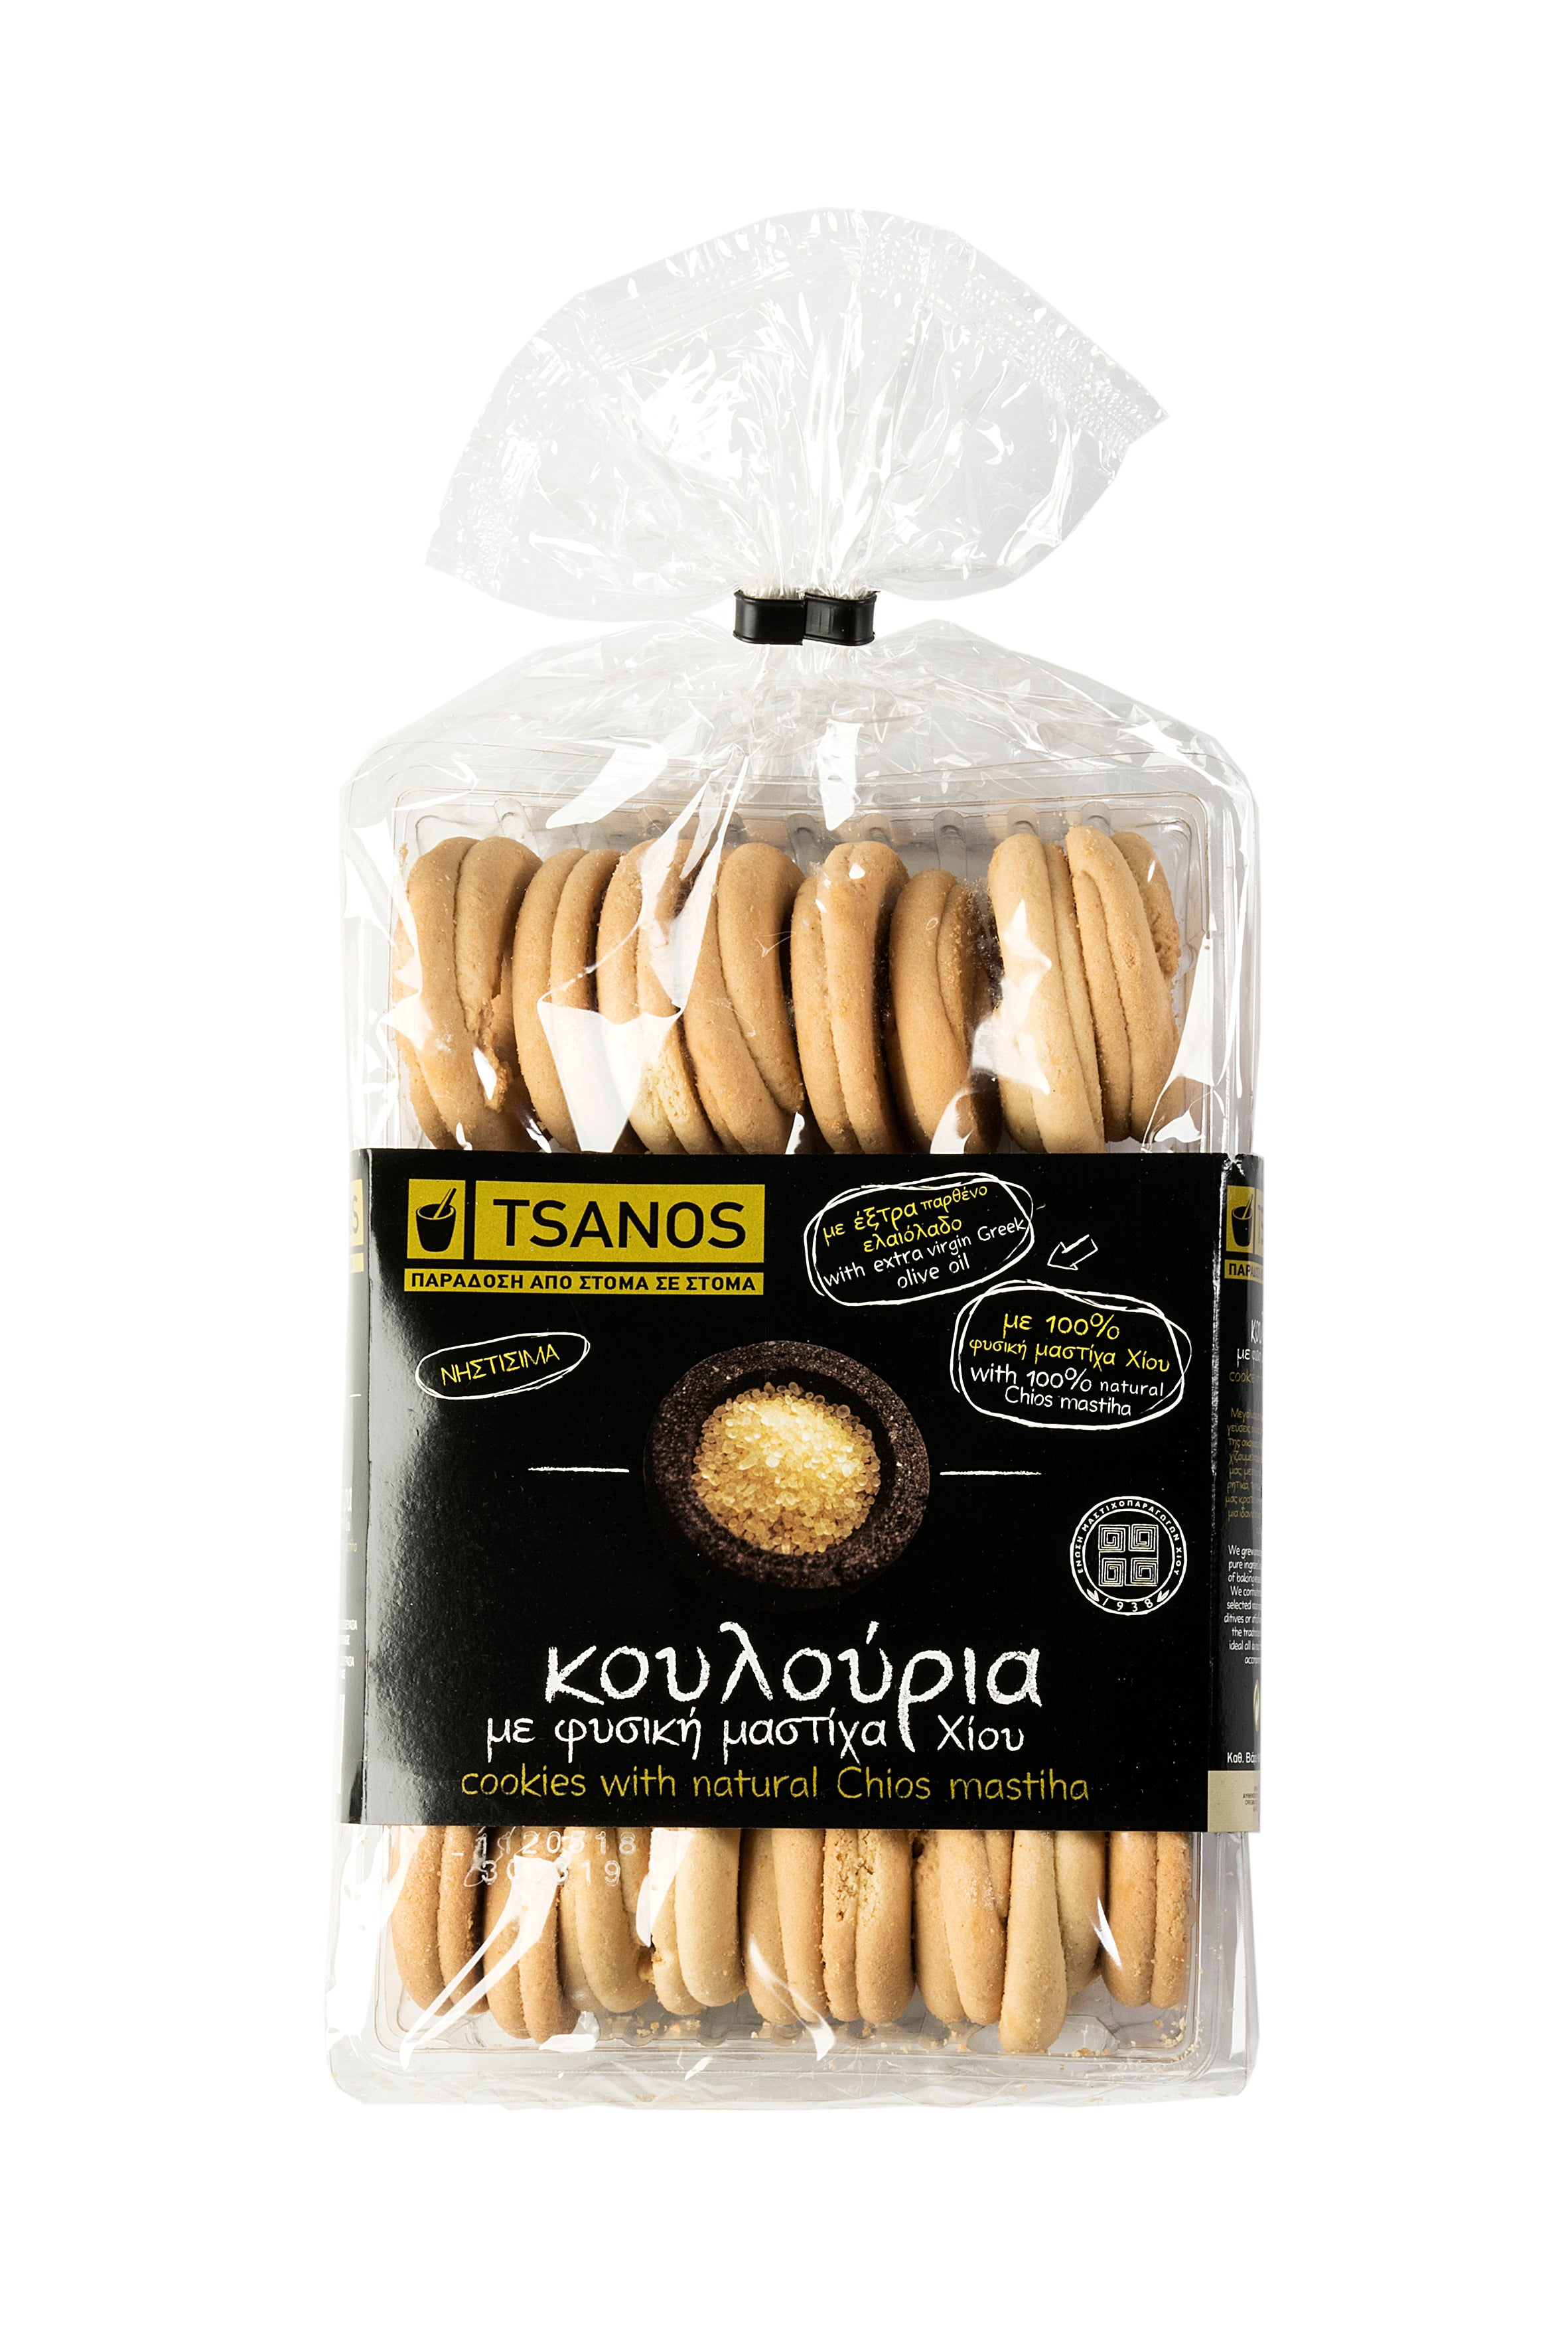 Tsanos Cookies with Natural Chios Mastiha